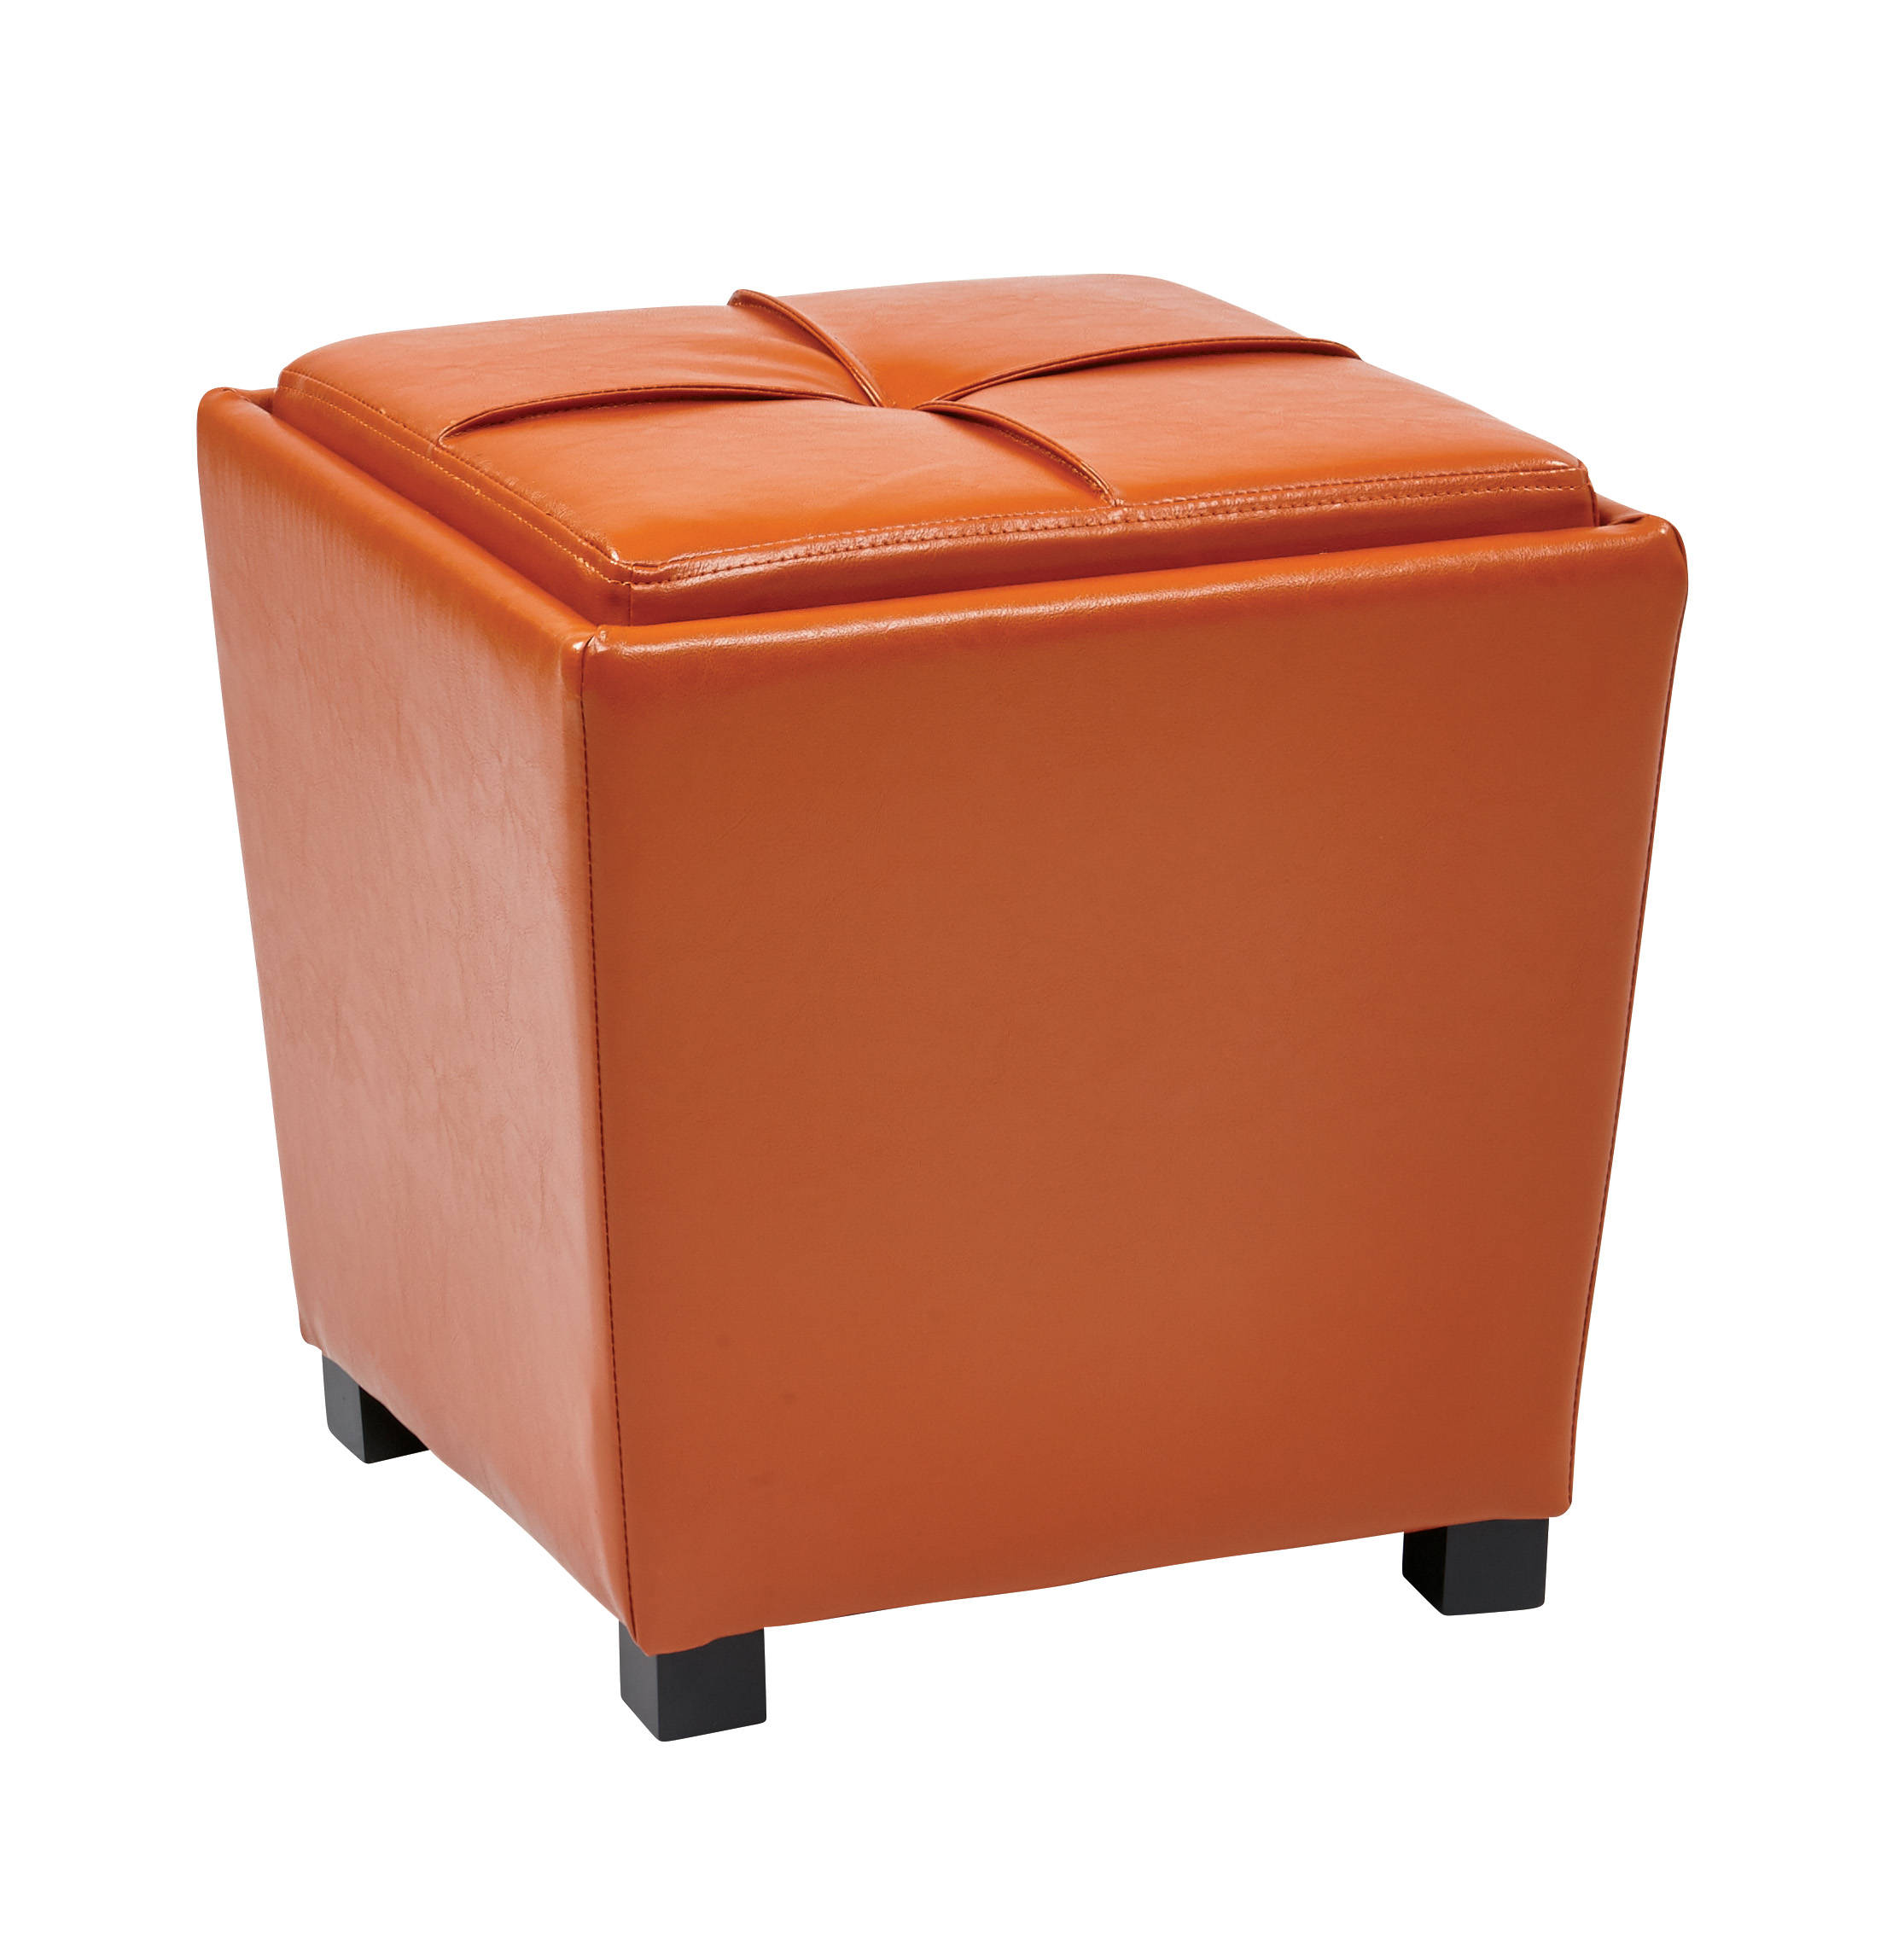 Peachy Metro Orange Vinyl Wood Tray Top 2Pc Storage Ottoman Set Andrewgaddart Wooden Chair Designs For Living Room Andrewgaddartcom